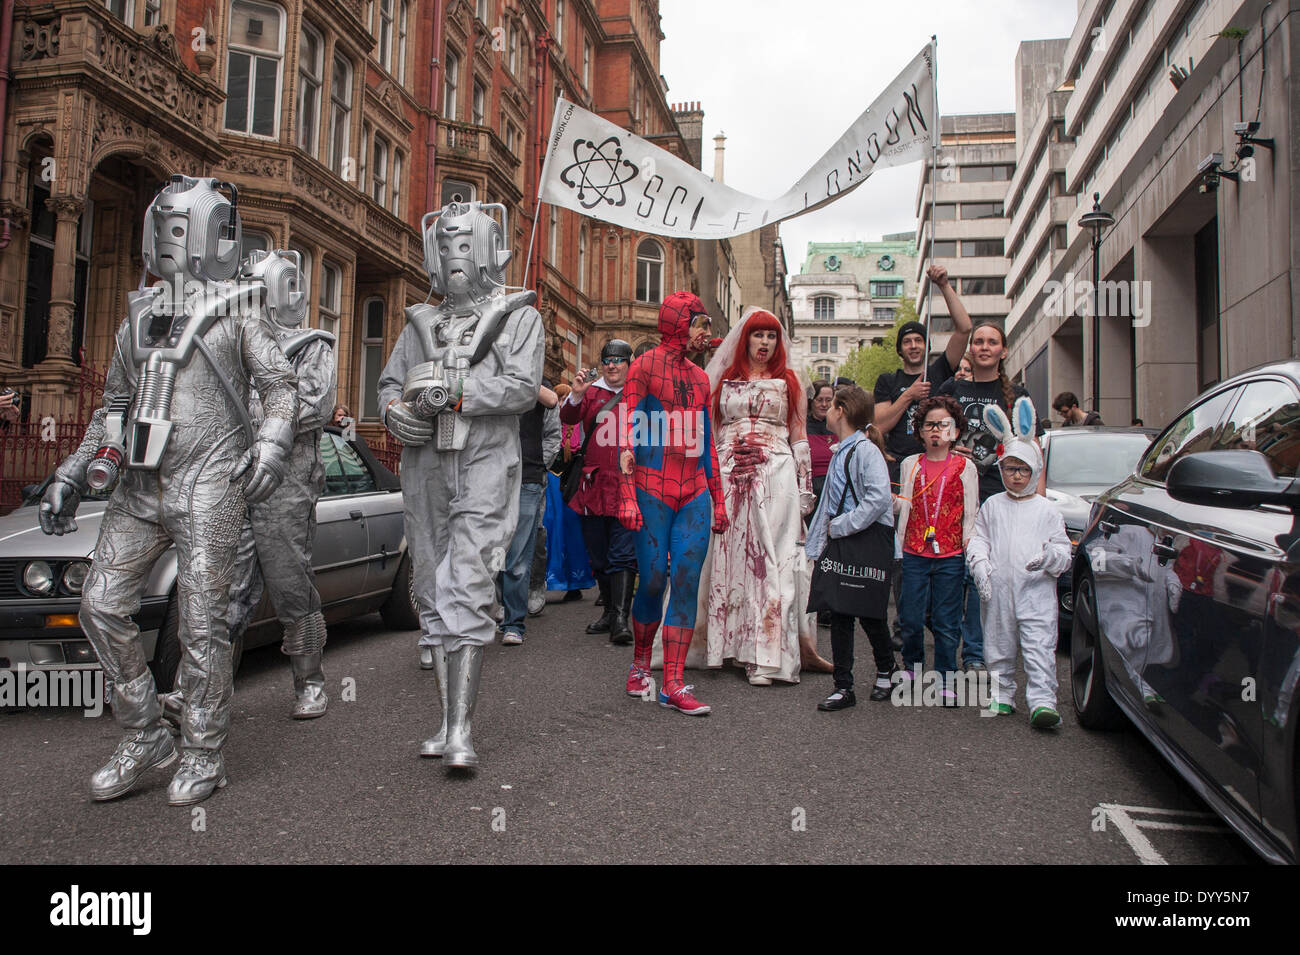 London, 27 April 2014 - people dressed as their favourite sci-fi characters take part in the Sci-Fi London 2014 costume parade starting at Somerset House and finishing at the BFI on the South Bank.  The parade passes near Aldwych.    Credit:  Stephen Chung/Alamy Live News - Stock Image